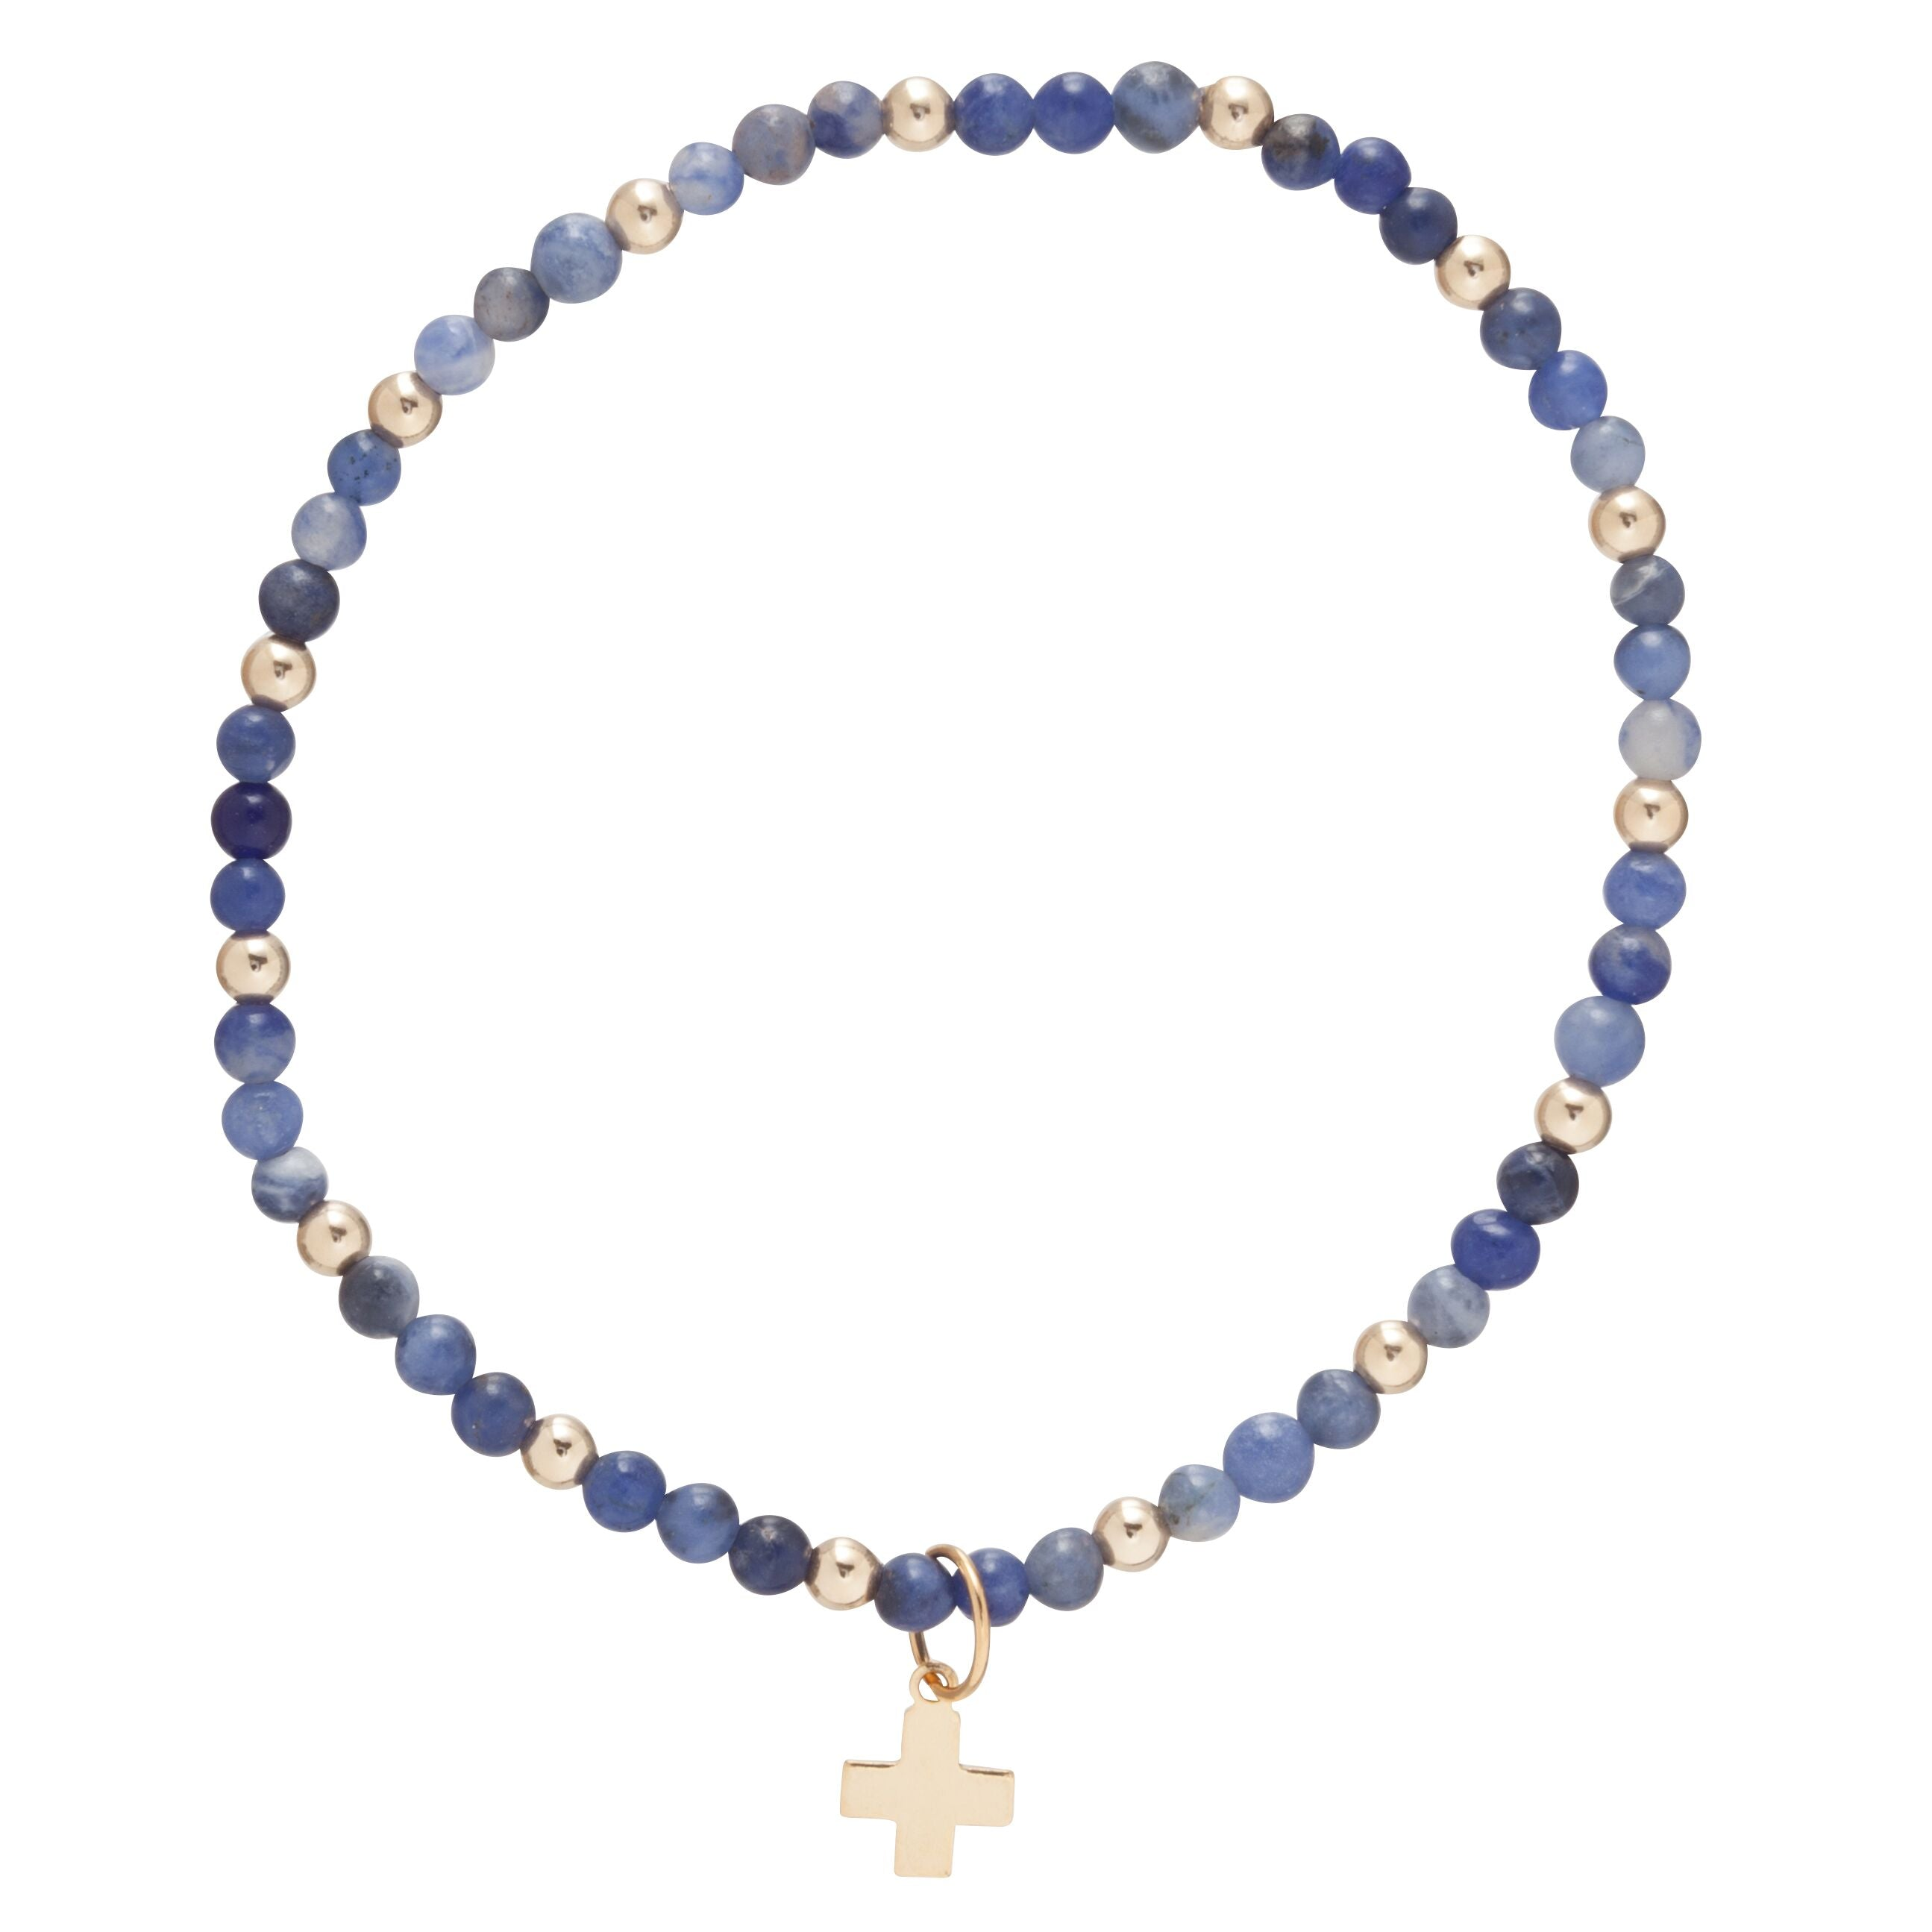 Enewton Sincerity Pattern 3 mm- Signature Cross Bracelet